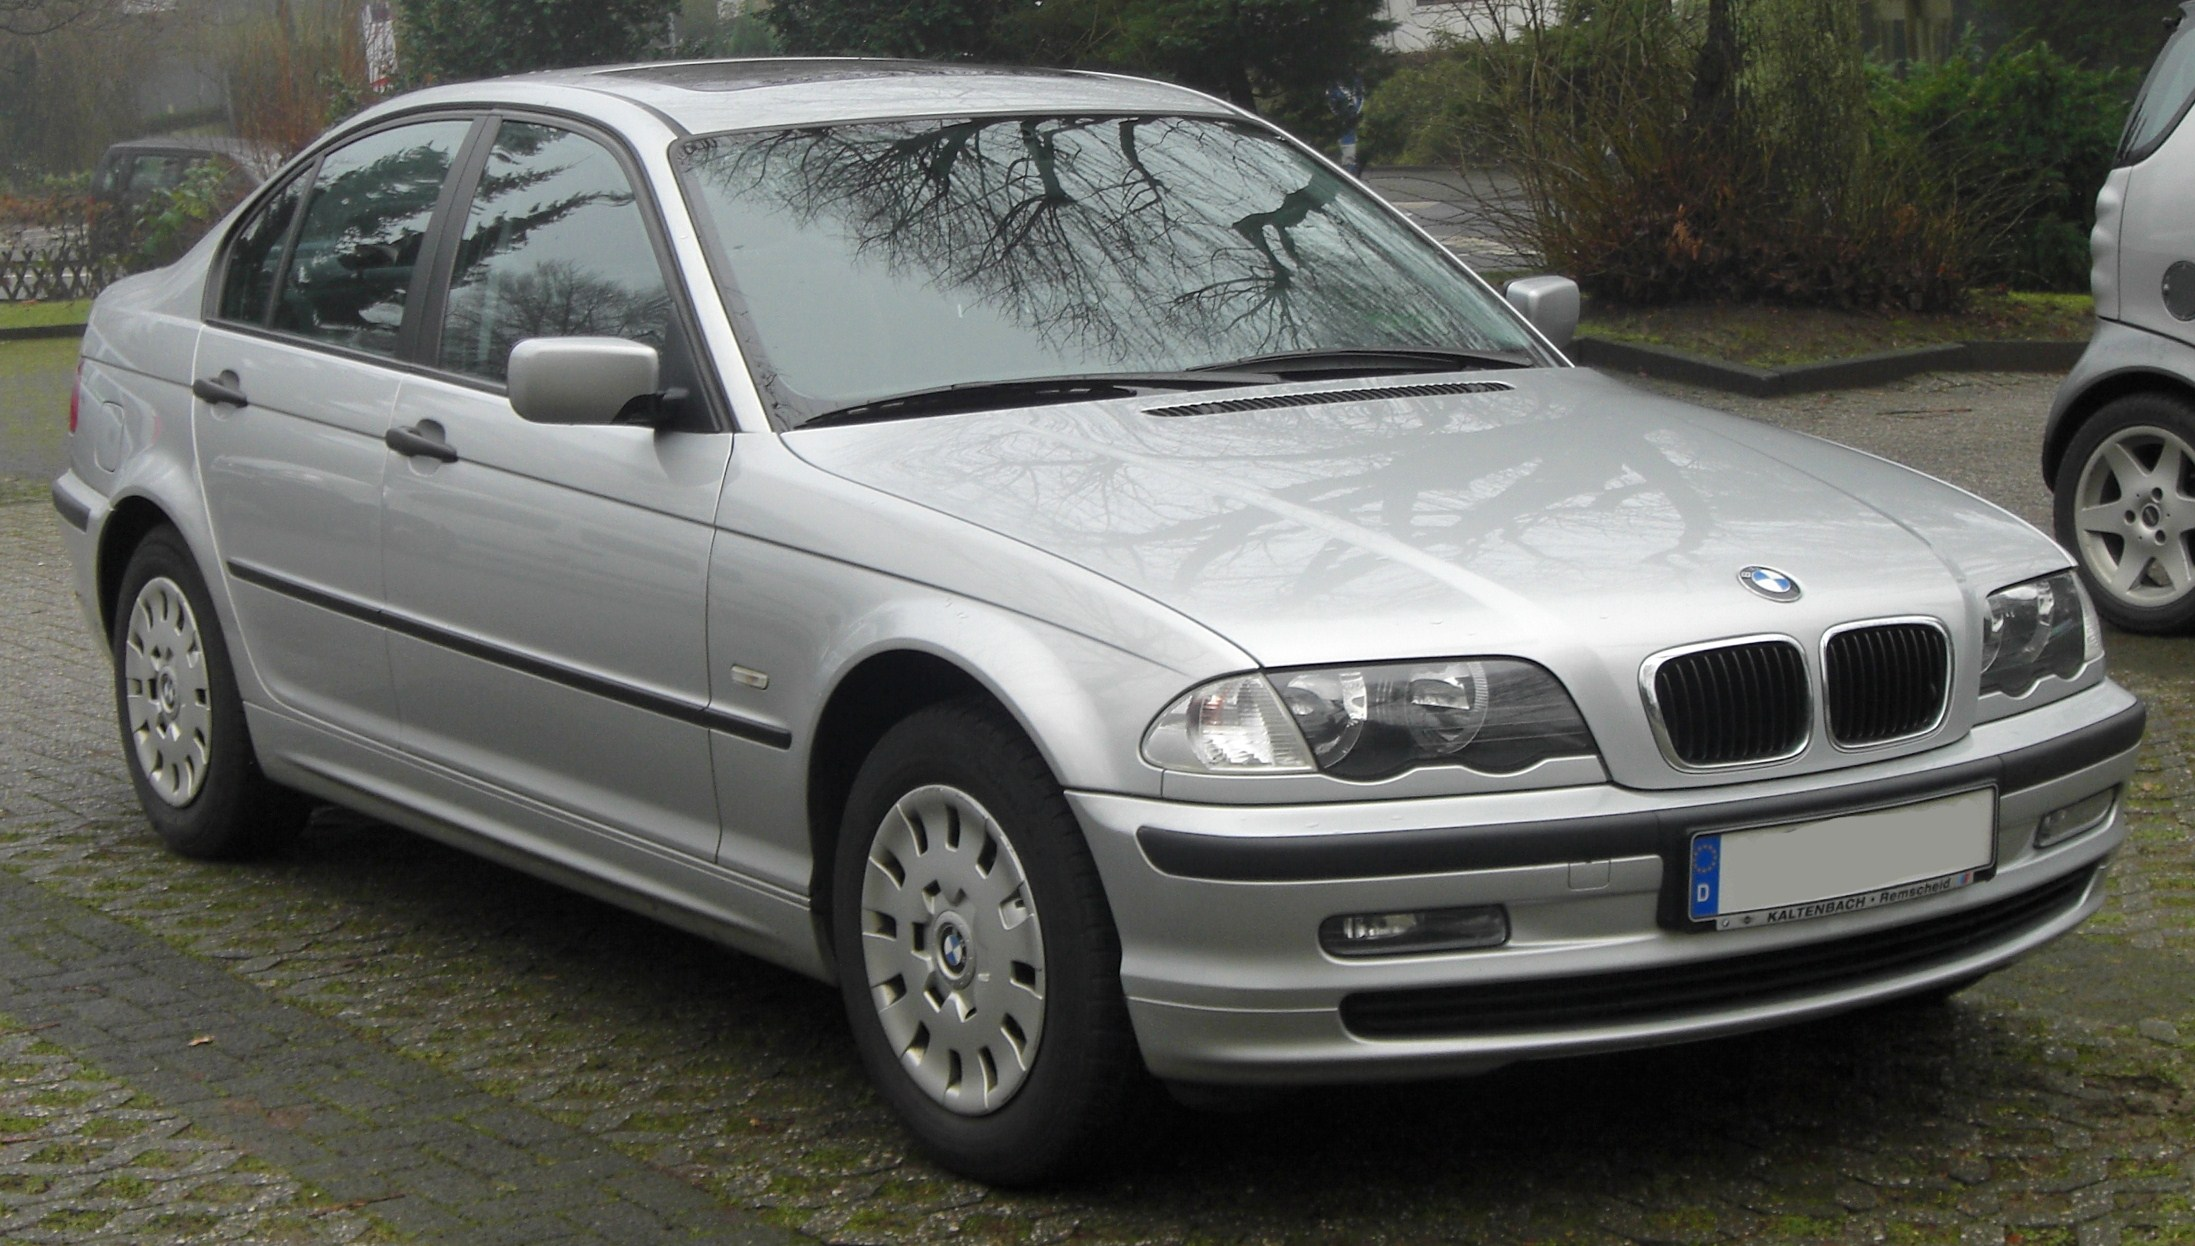 BMW 3 series 330xd 2001 photo - 3